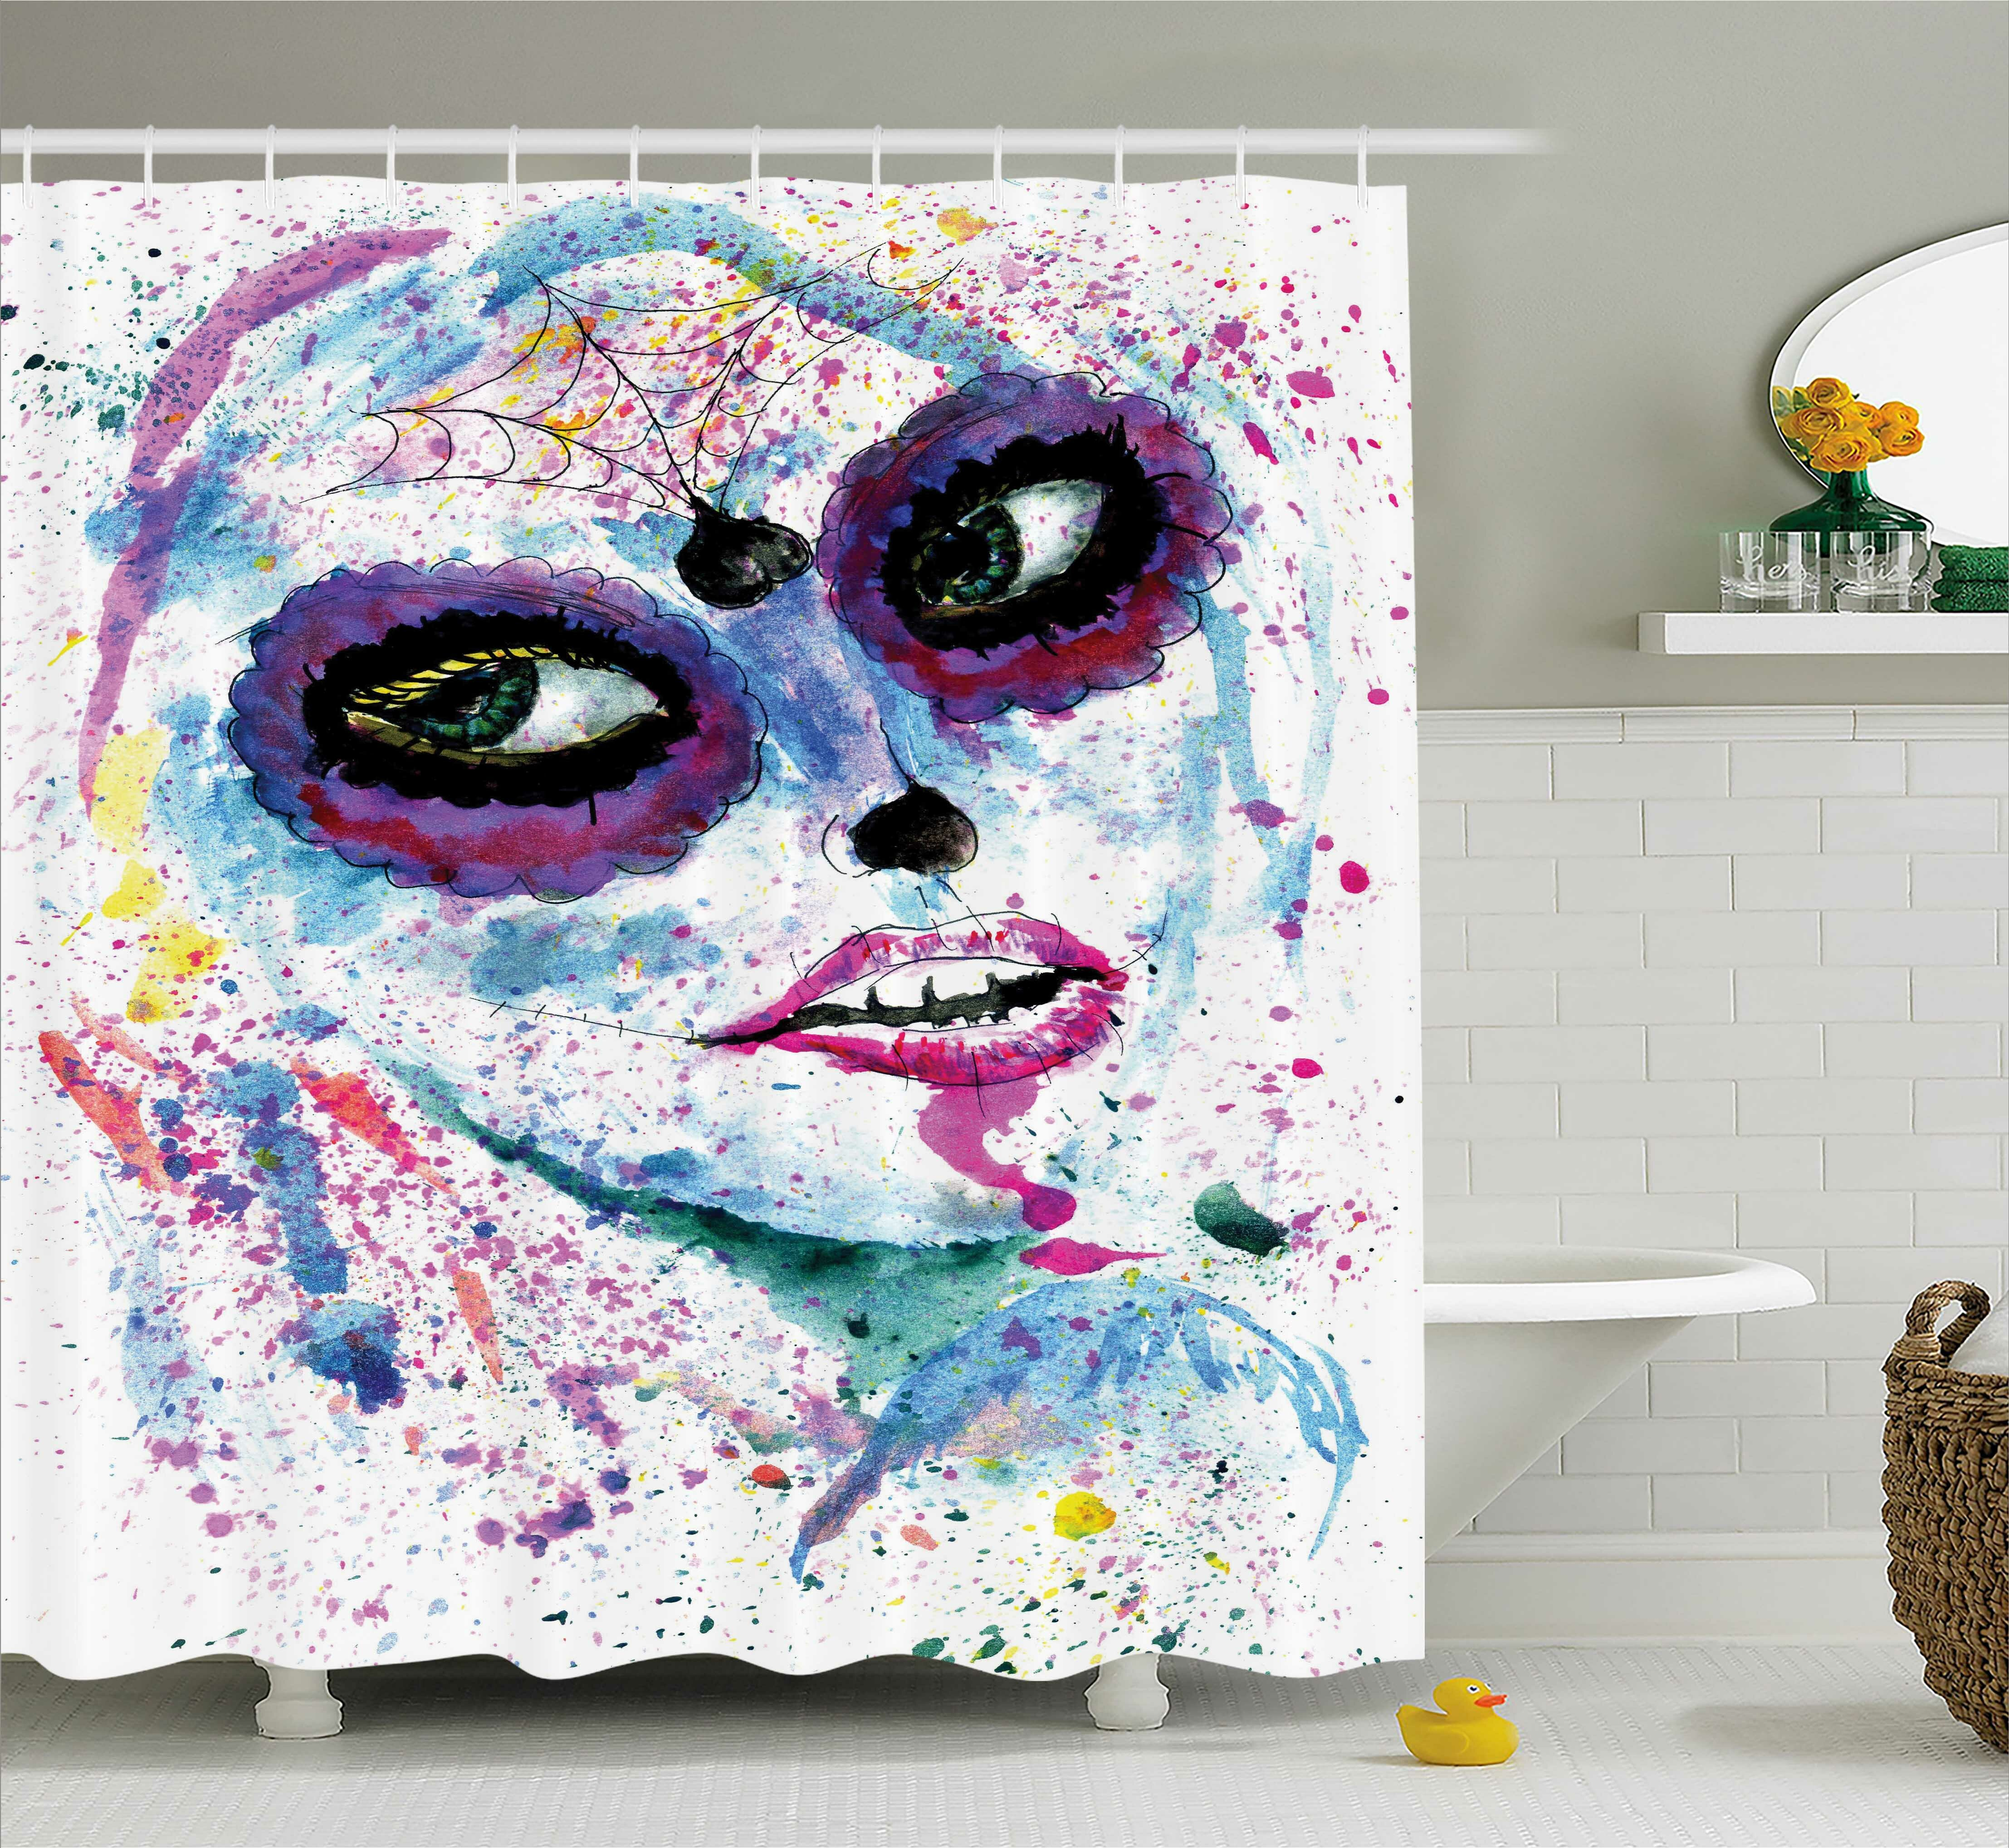 East Urban Home Girly Grunge Halloween Lady With Sugar Skull Make Up Creepy Dead Face Gothic Print Shower Curtain